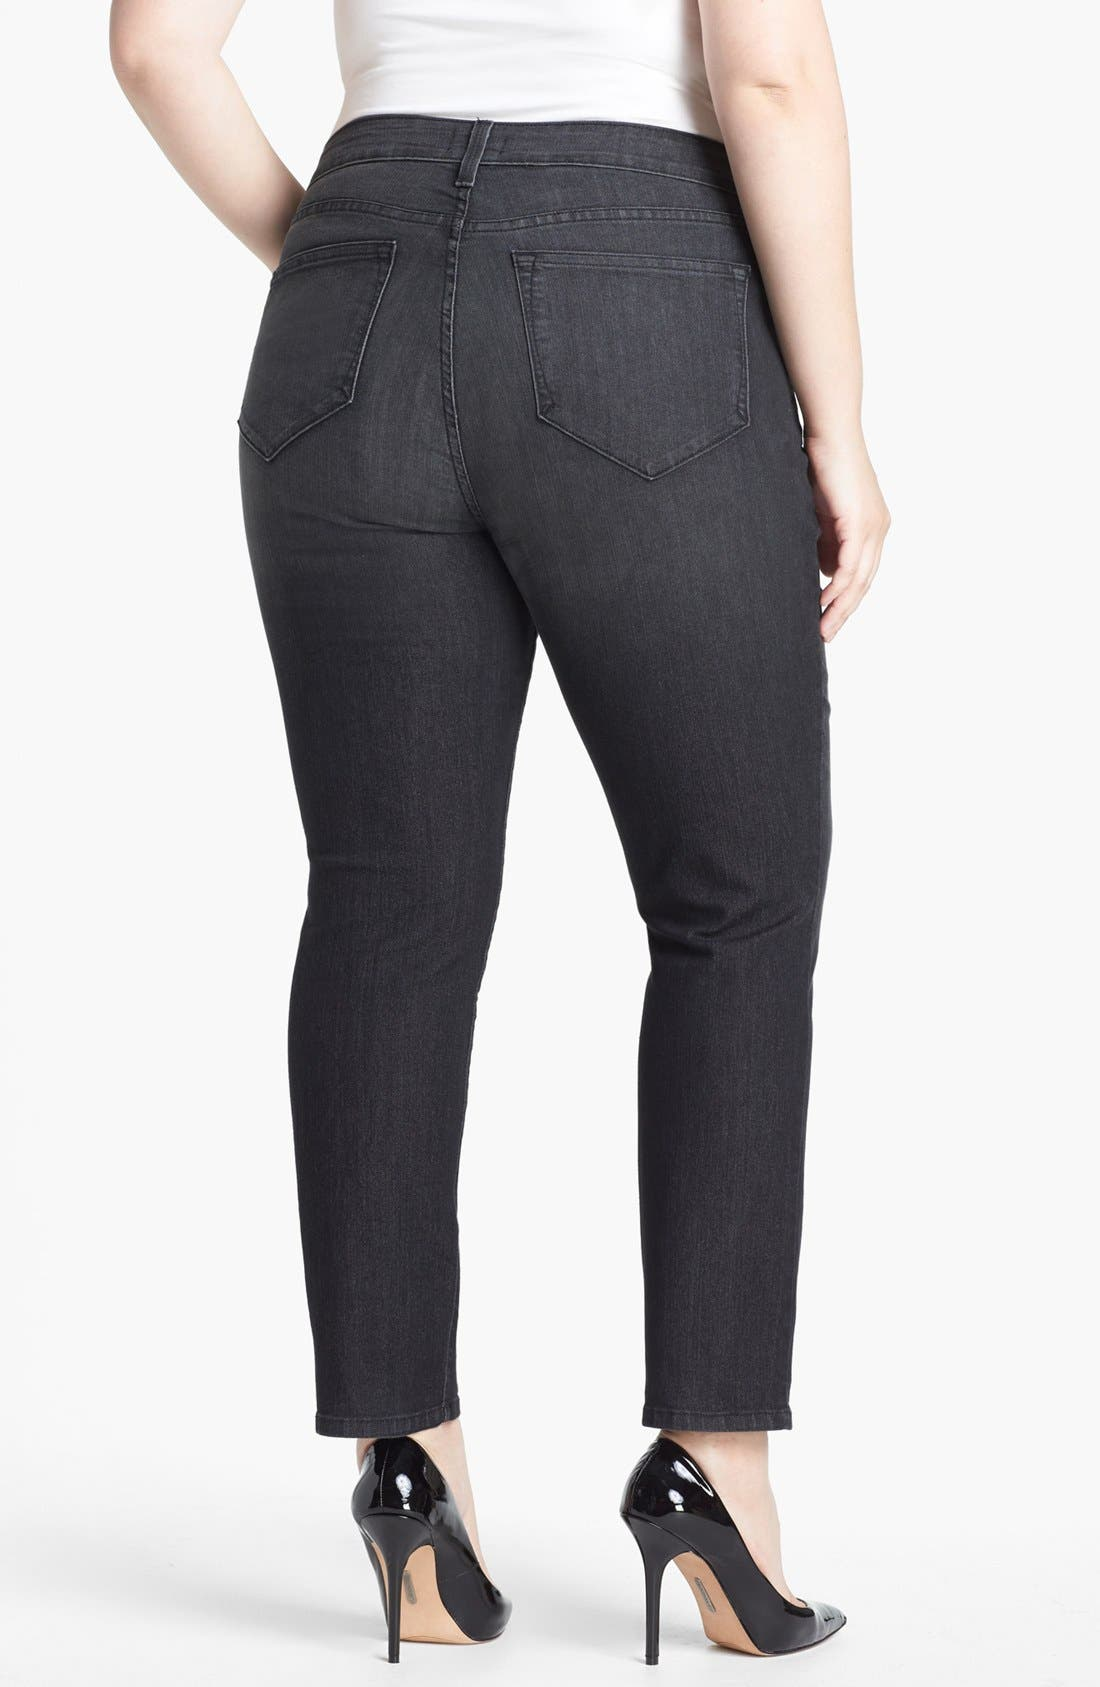 Alternate Image 2  - NYDJ 'Sheri' Stretch Ankle Jeans (Onyx) (Plus Size)